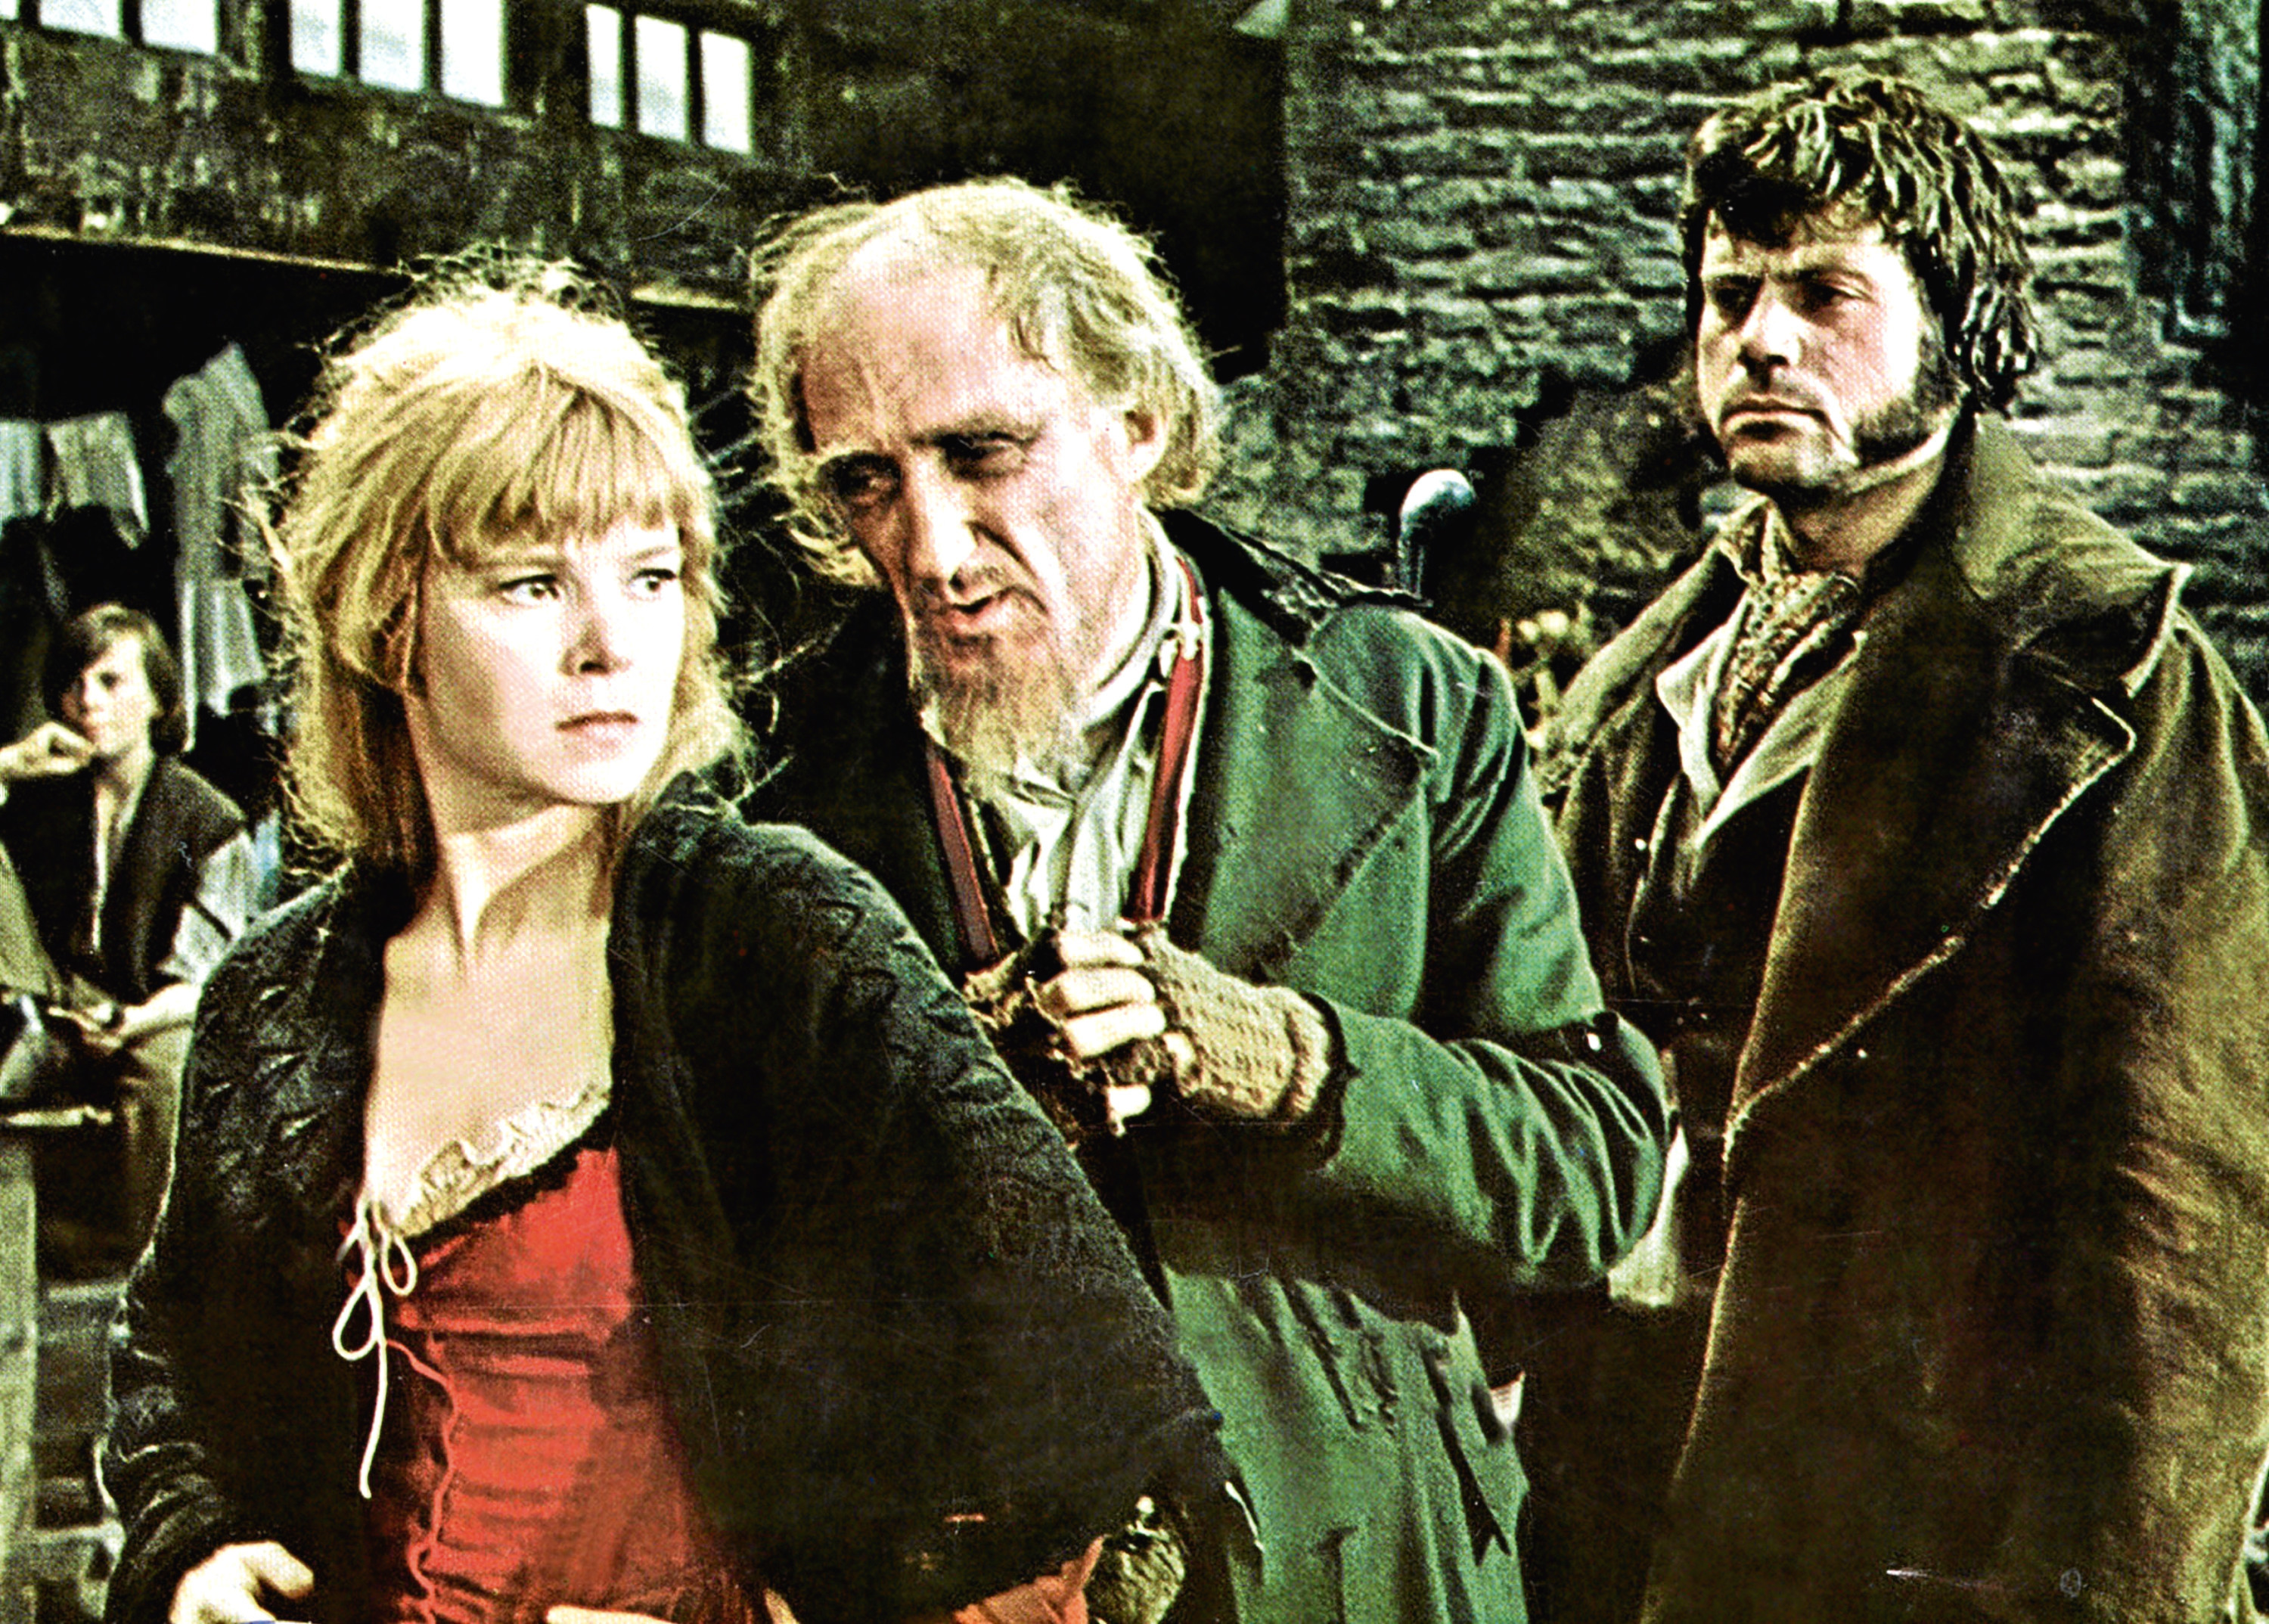 SHANI WALLIS, RON MOODY & OLIVER REED IN 'OLIVER!' (1968) (Allstar/ROMULUS)